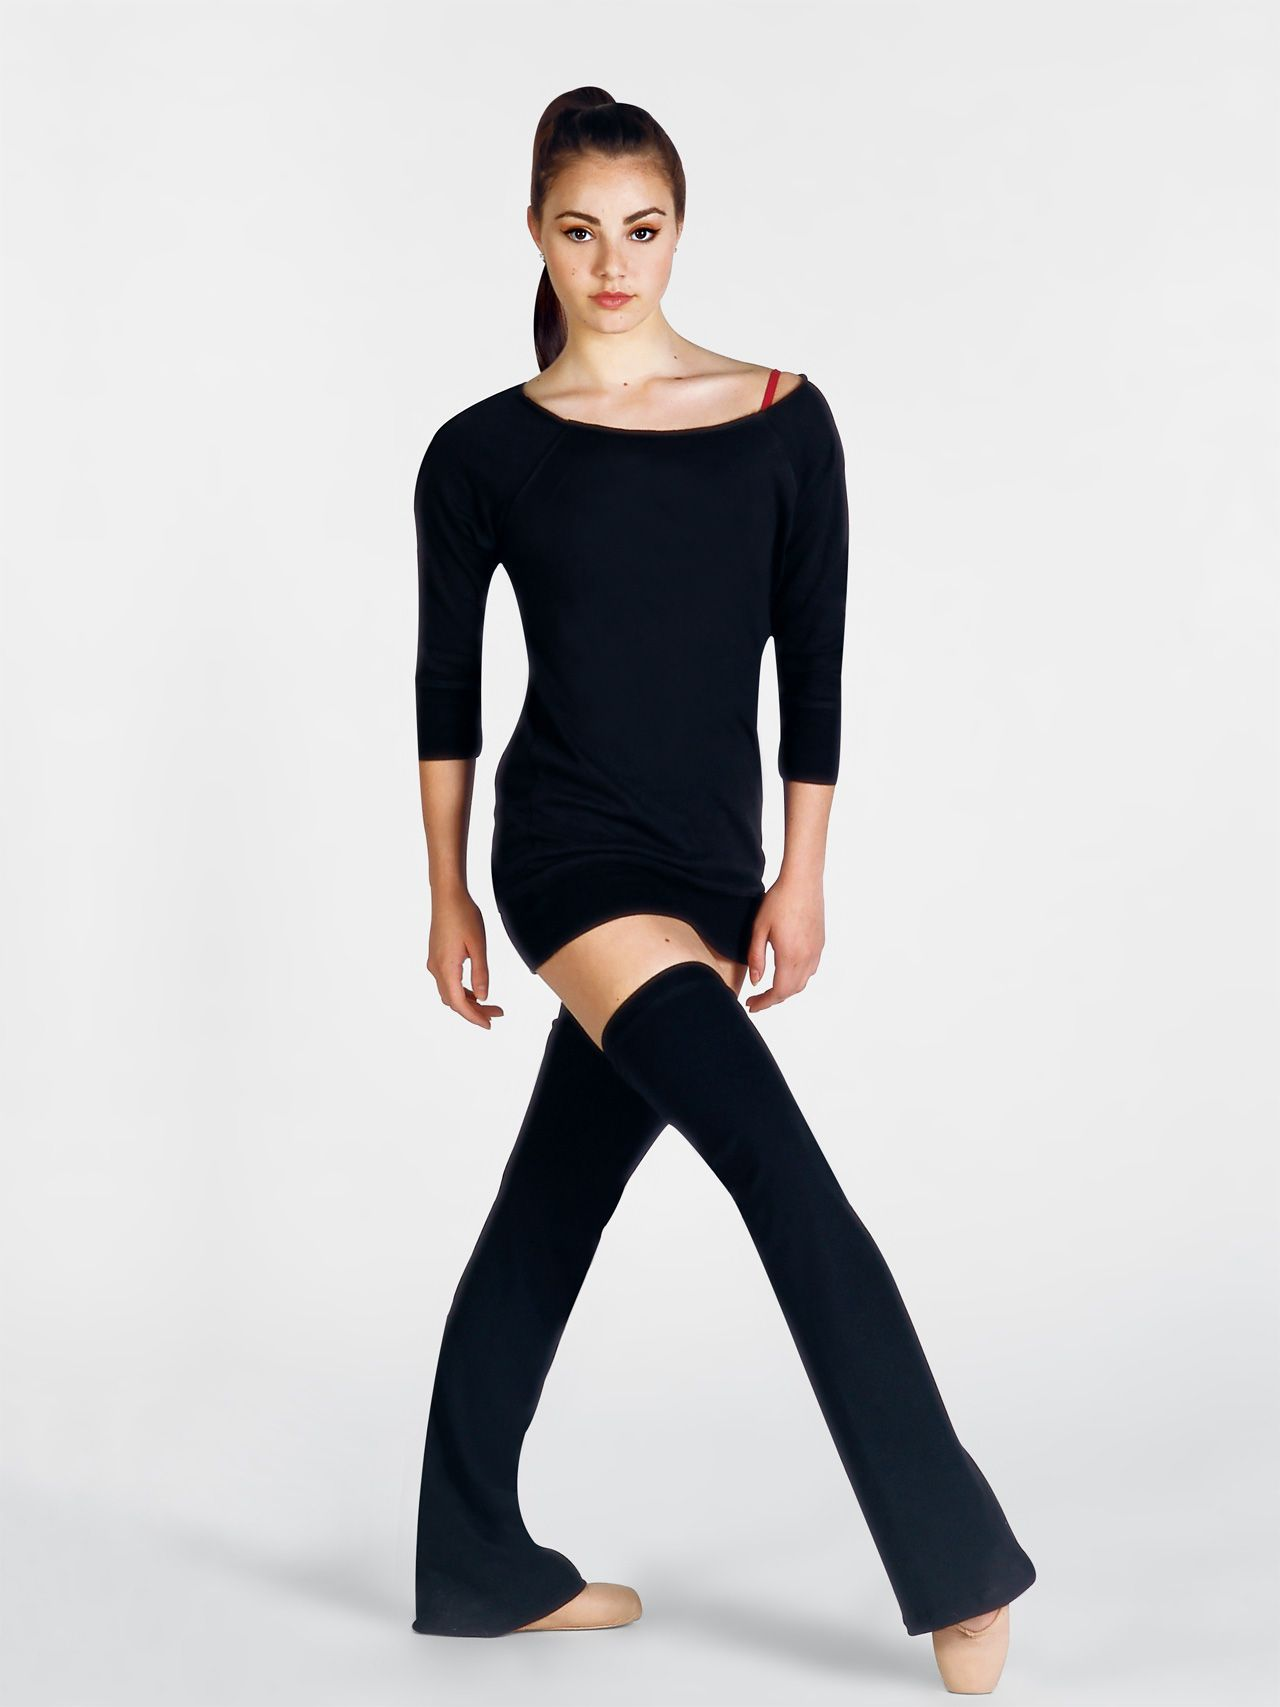 Sweatshirt by NATALIE (With images) Dance fashion